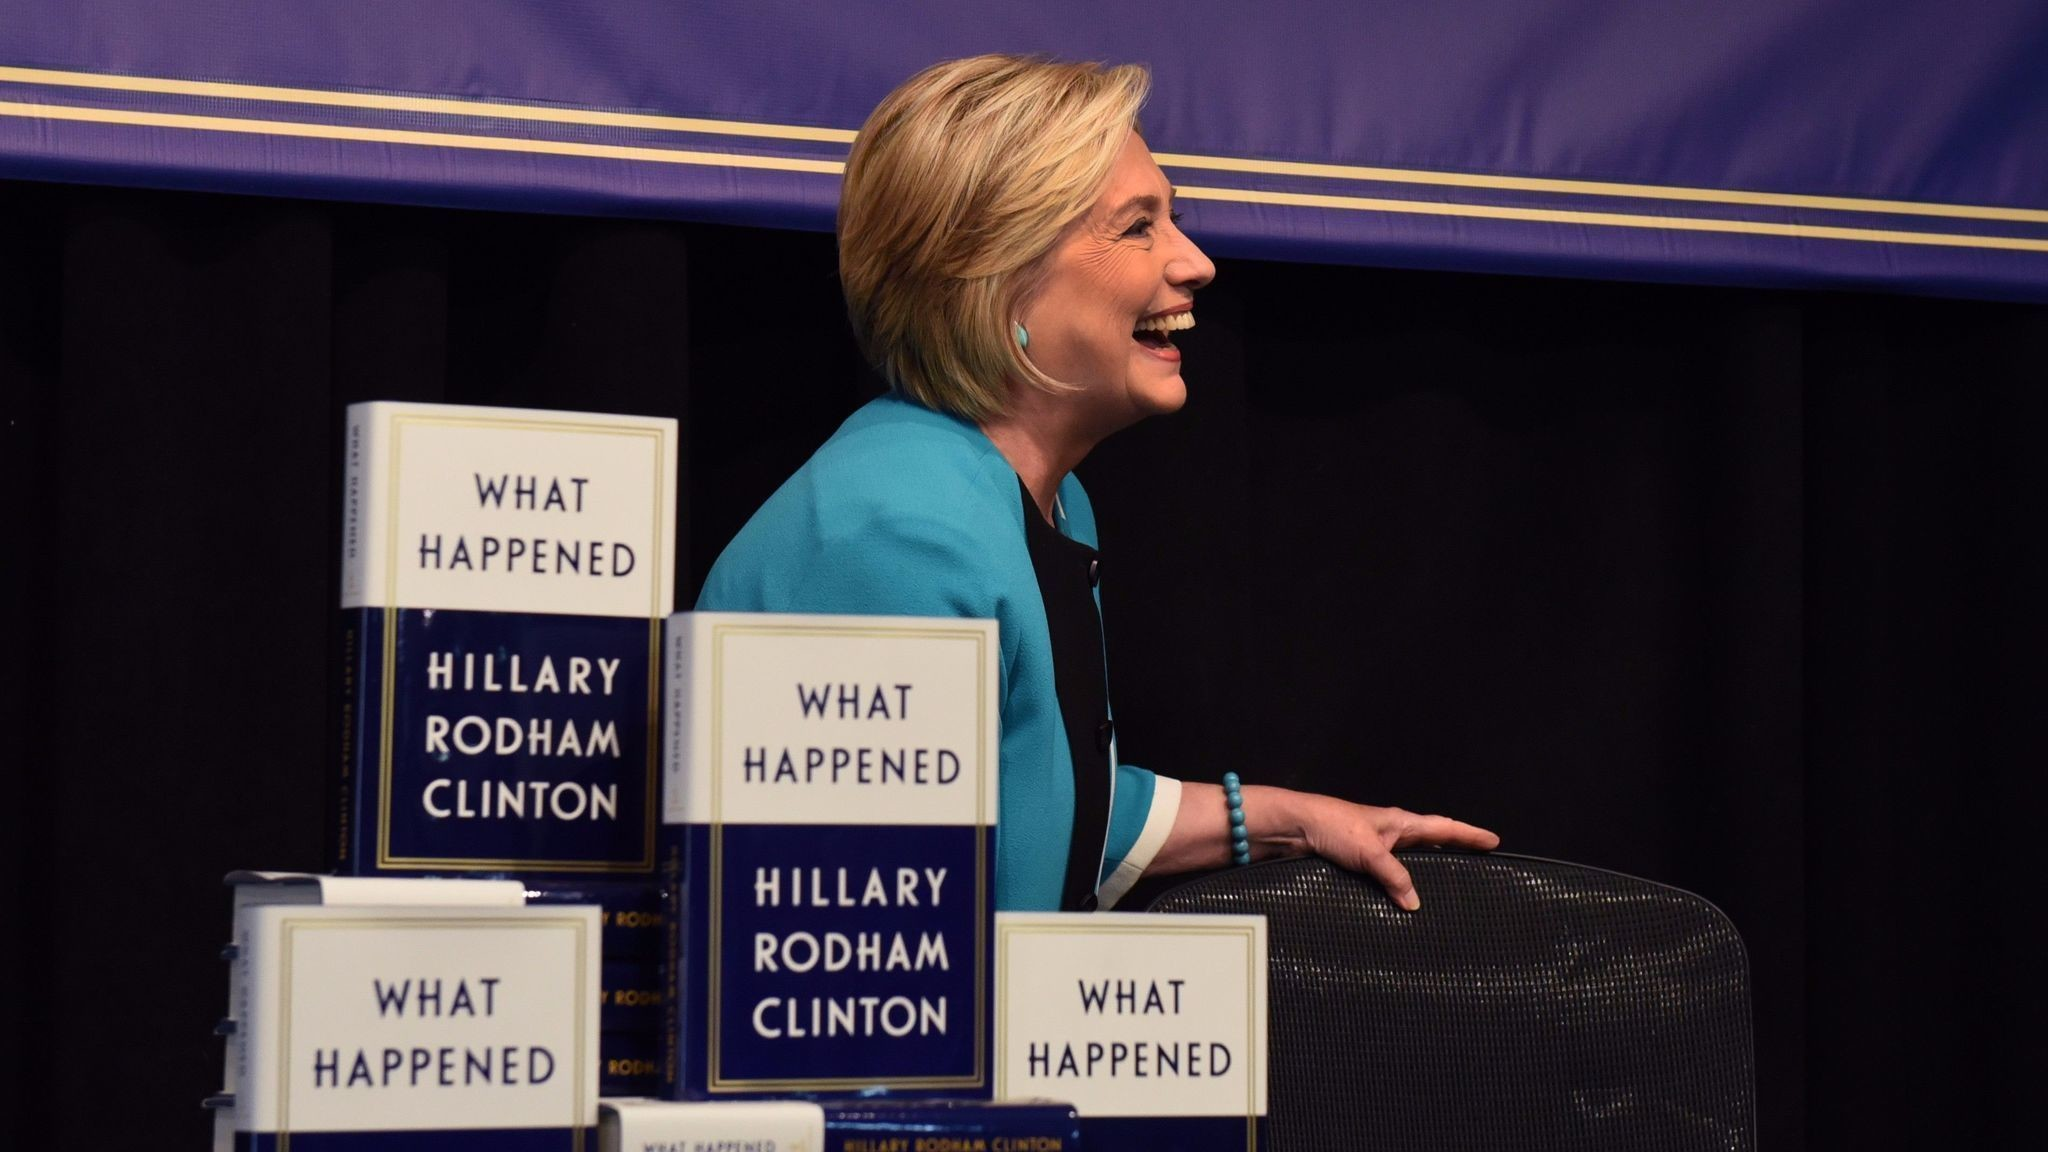 New York crowd cheers Hillary Clinton at book signing; Trump spokeswoman  has different reaction – Chicago Tribune